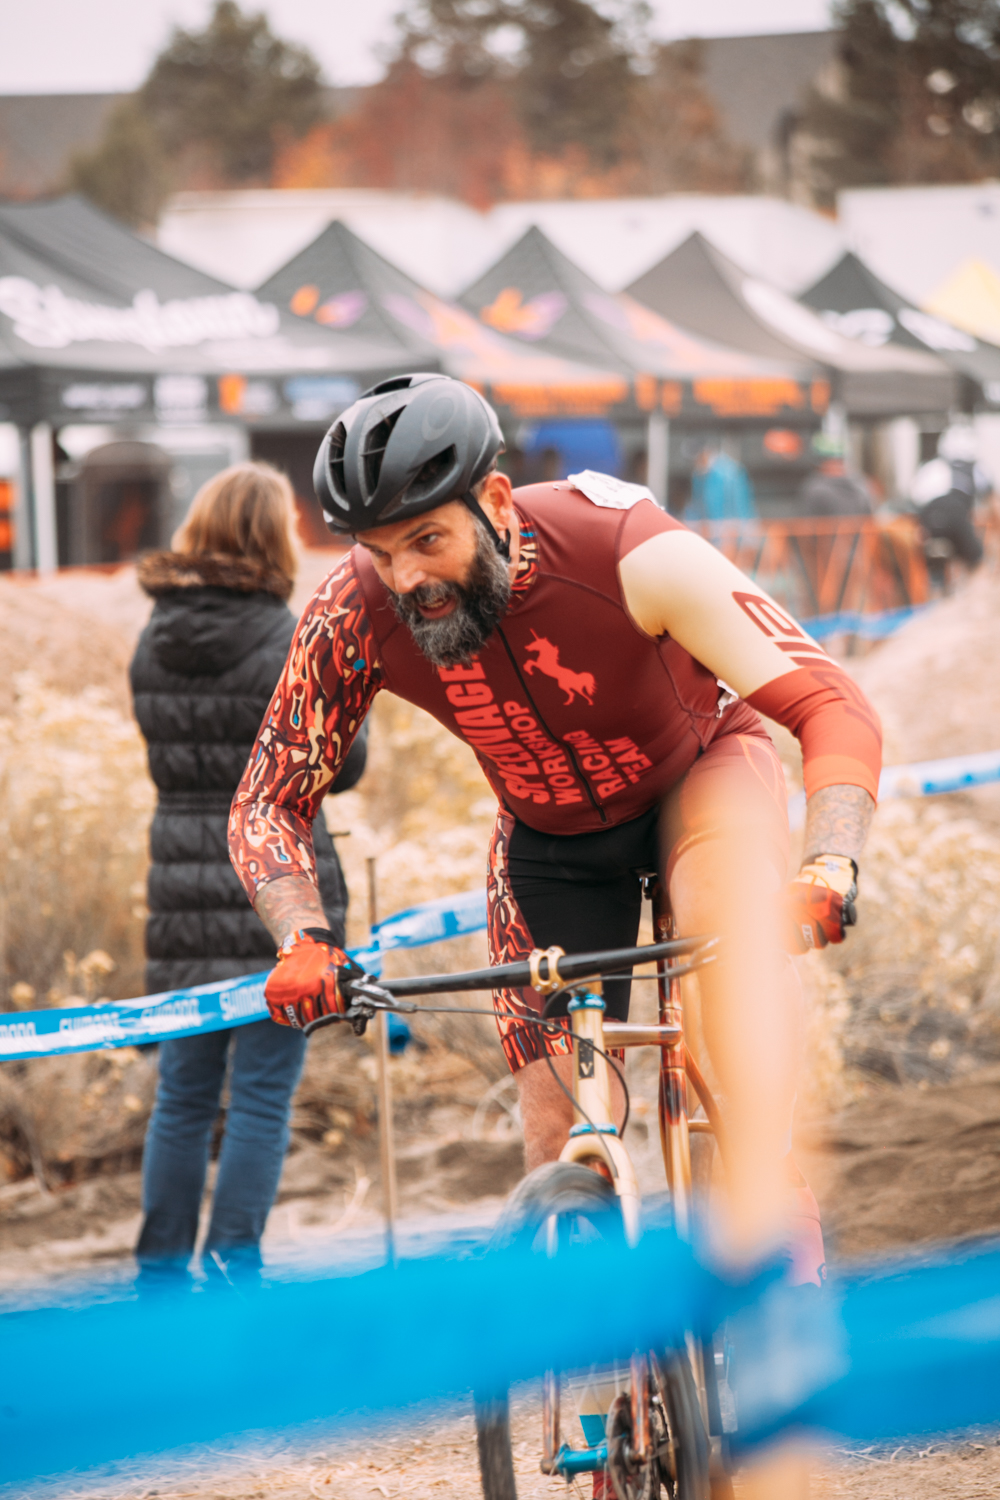 Cyclocross18_CCCX-Bend-Day1-78-fransencomesalive-2.jpg